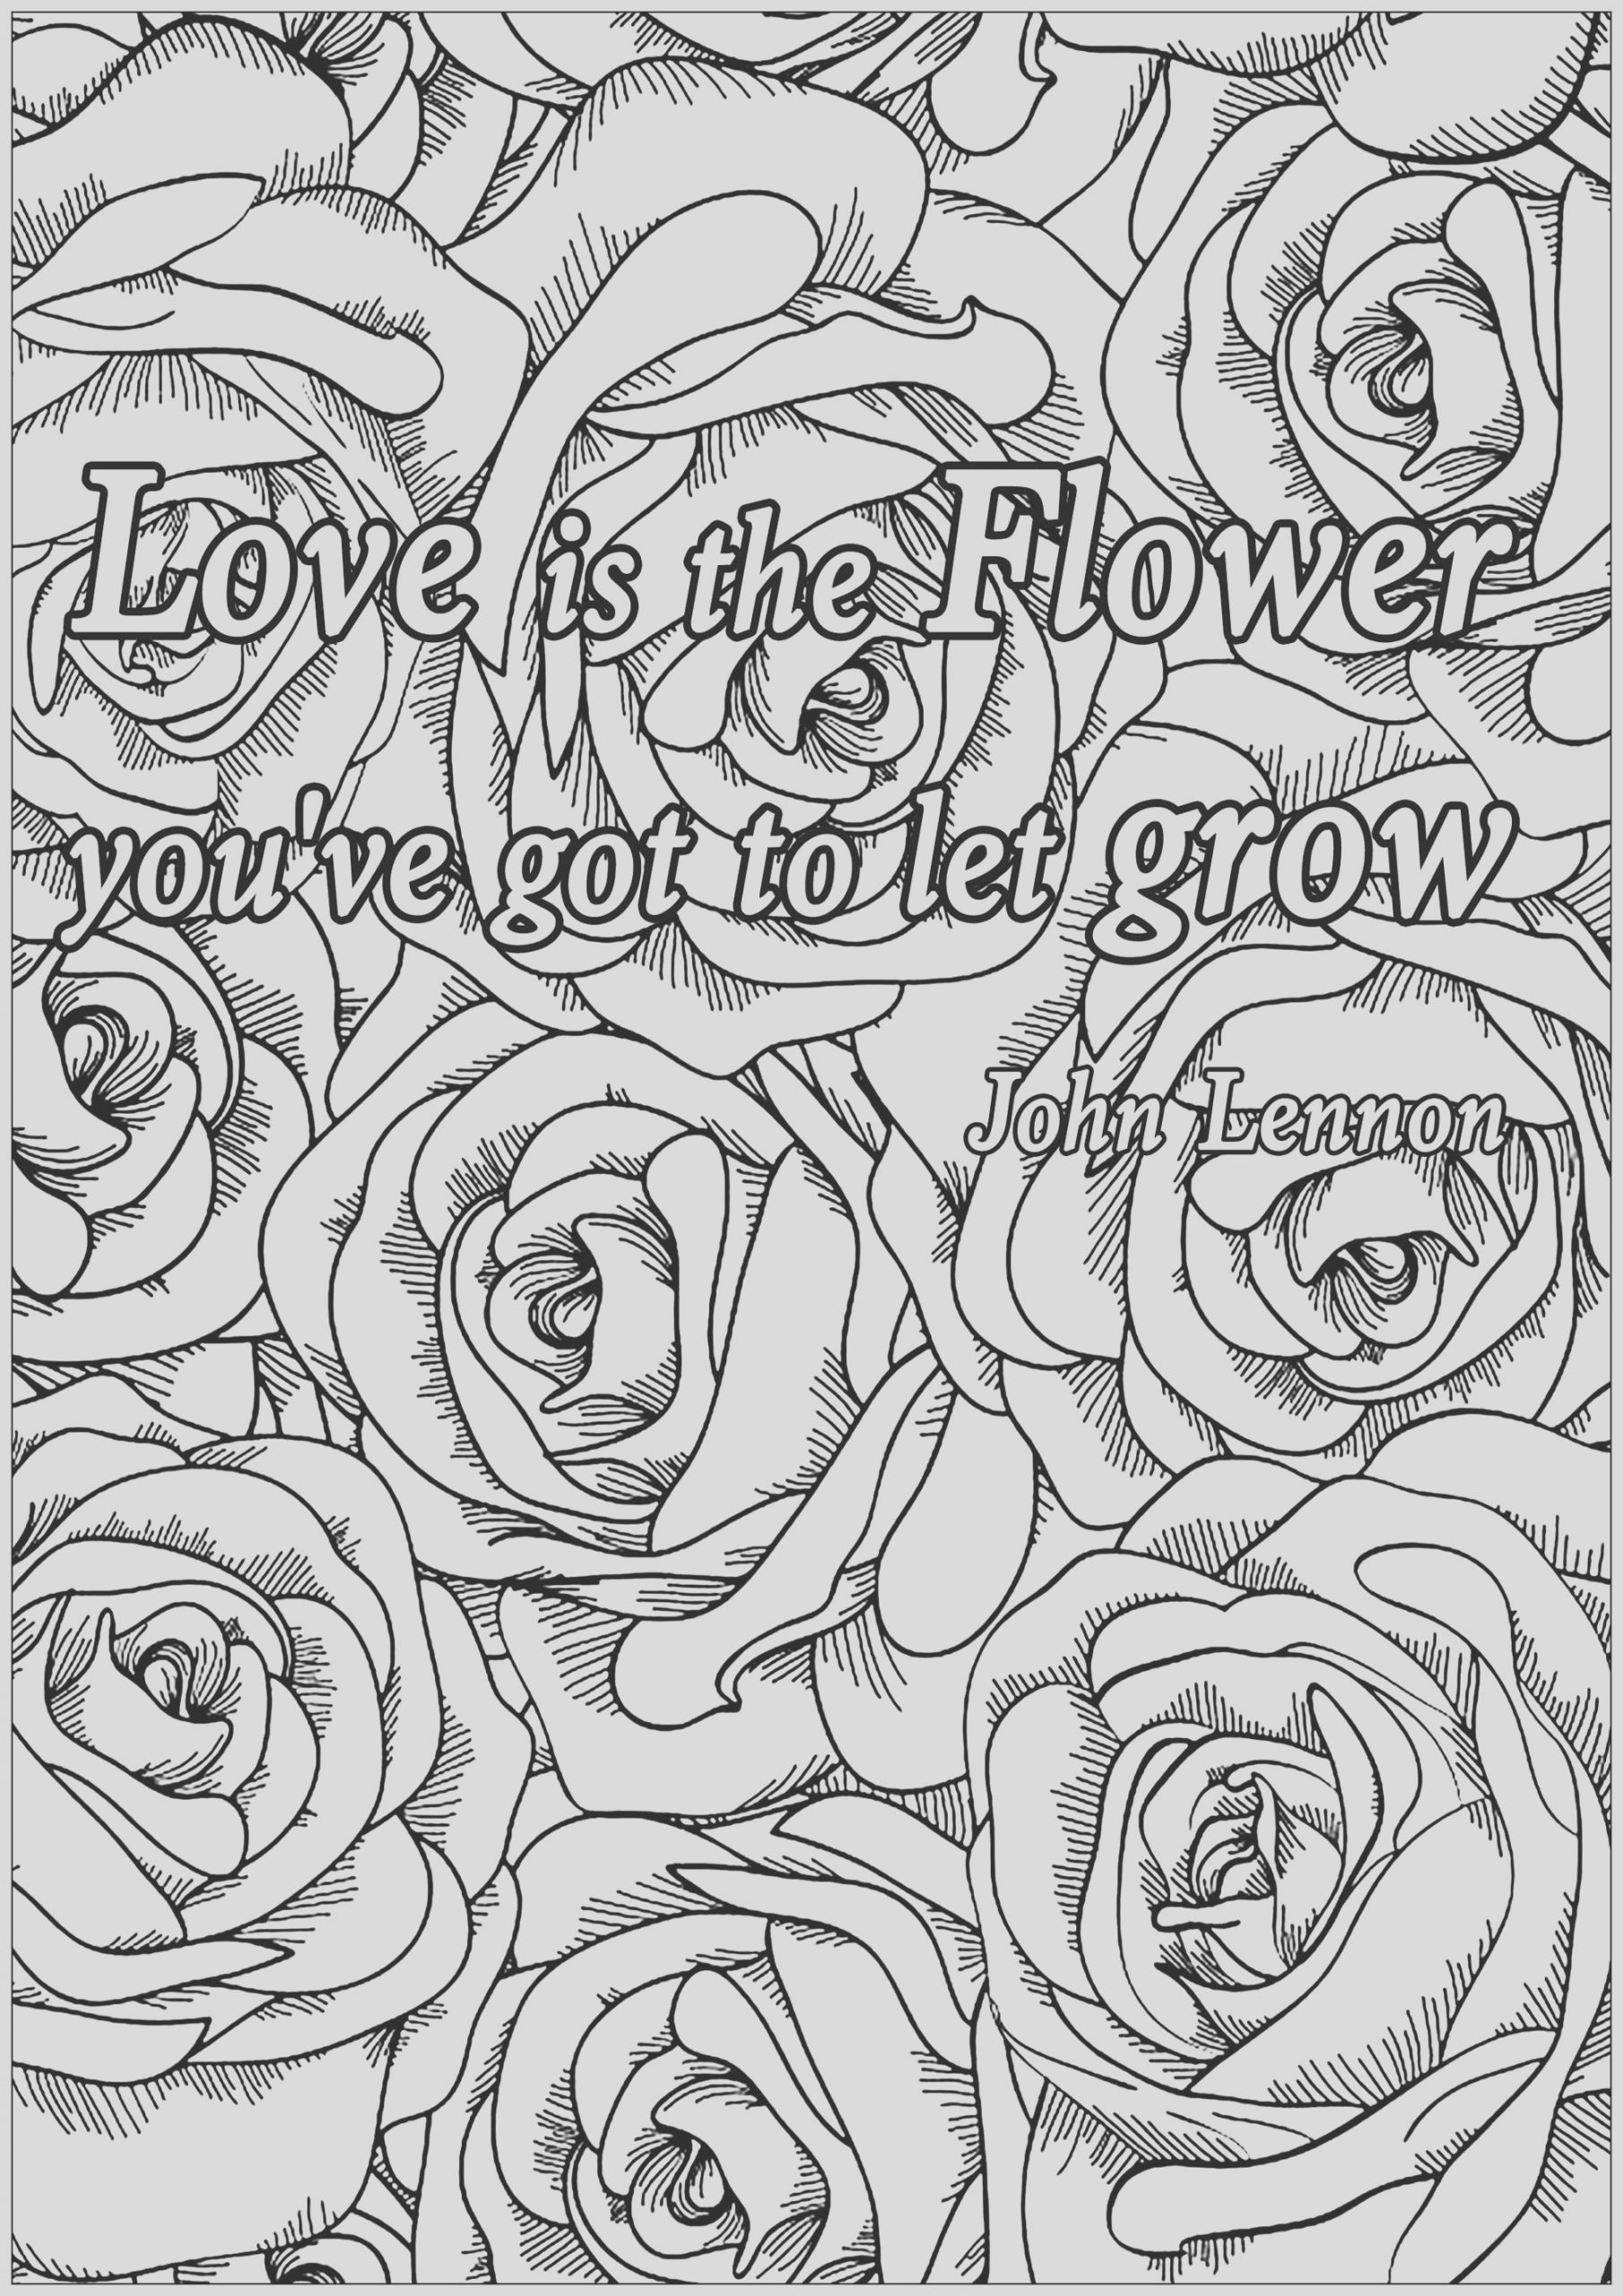 quotes image=quotes coloring love is the flower 1